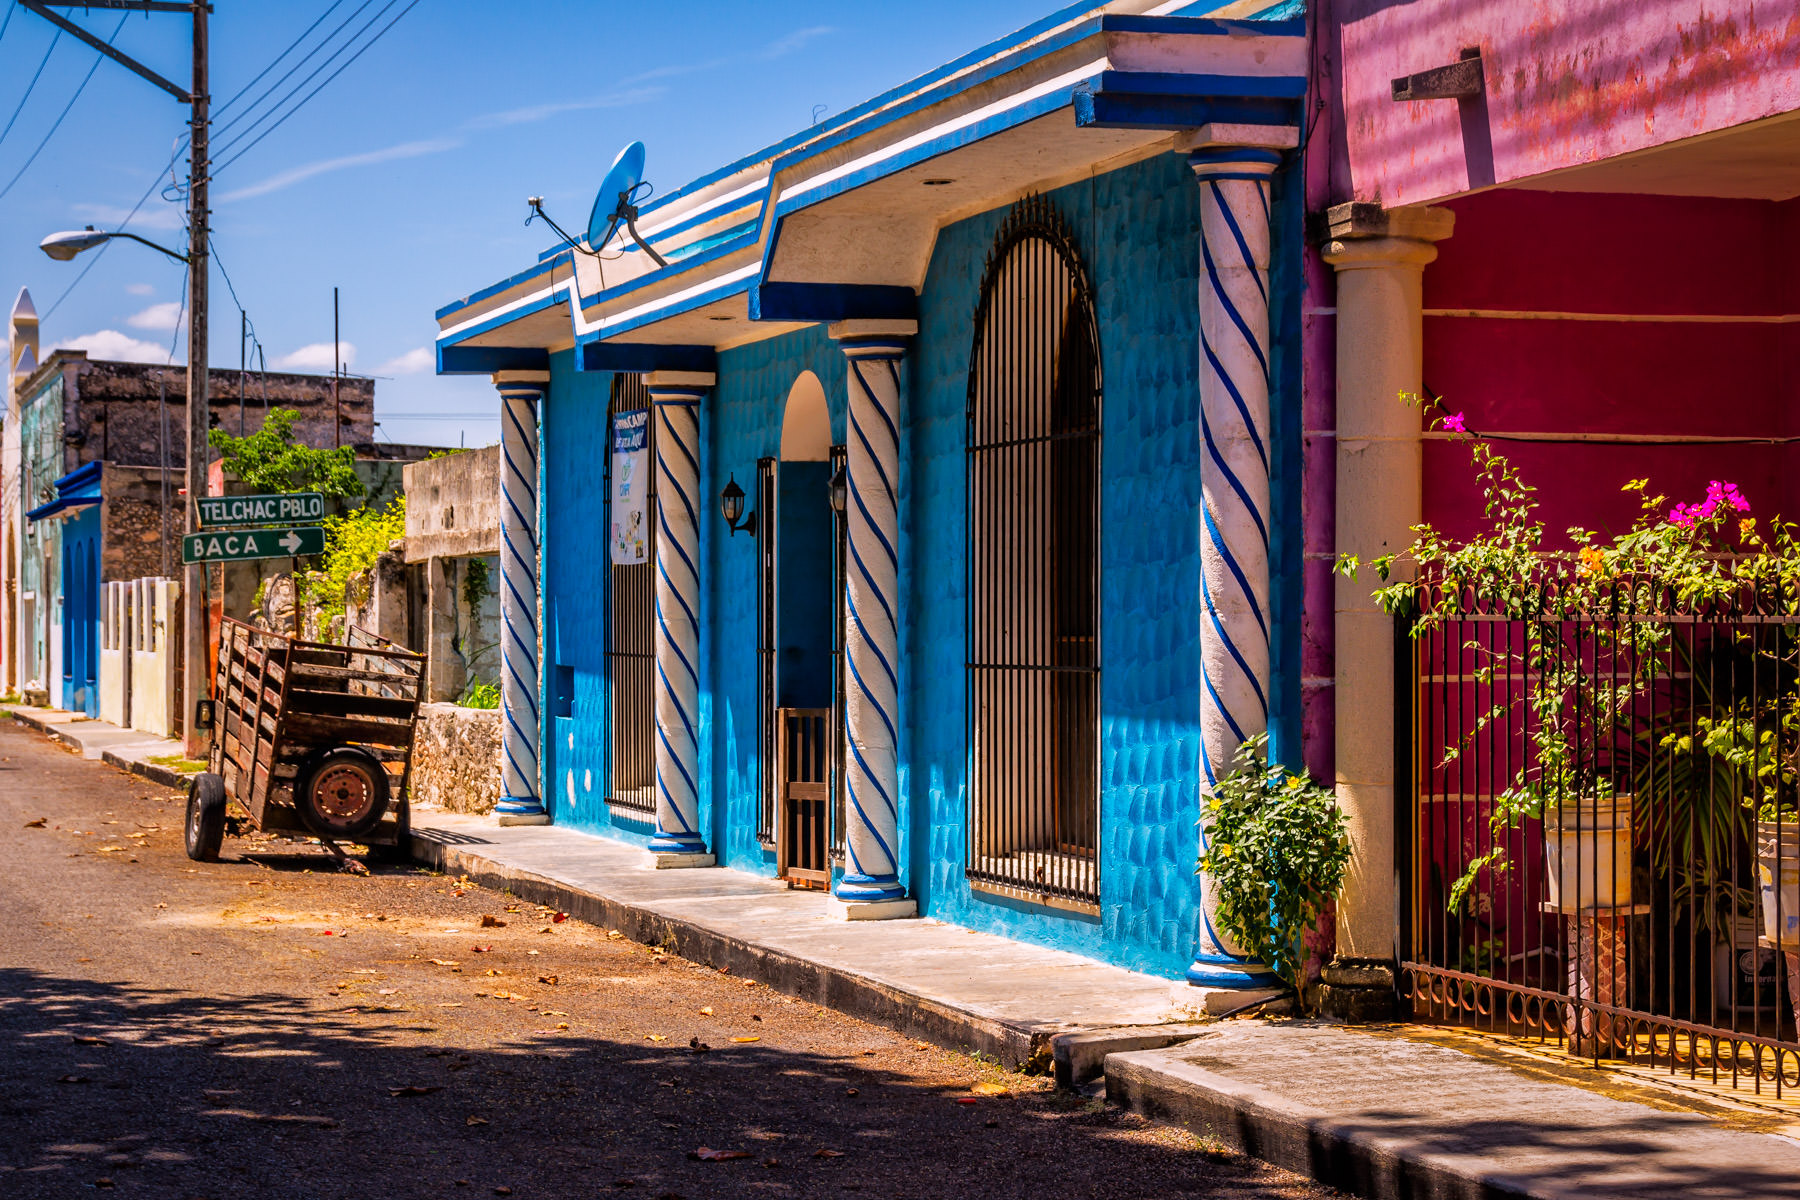 A wagon sits on the street amongst vivid buildings in Dzemul, Mexico.